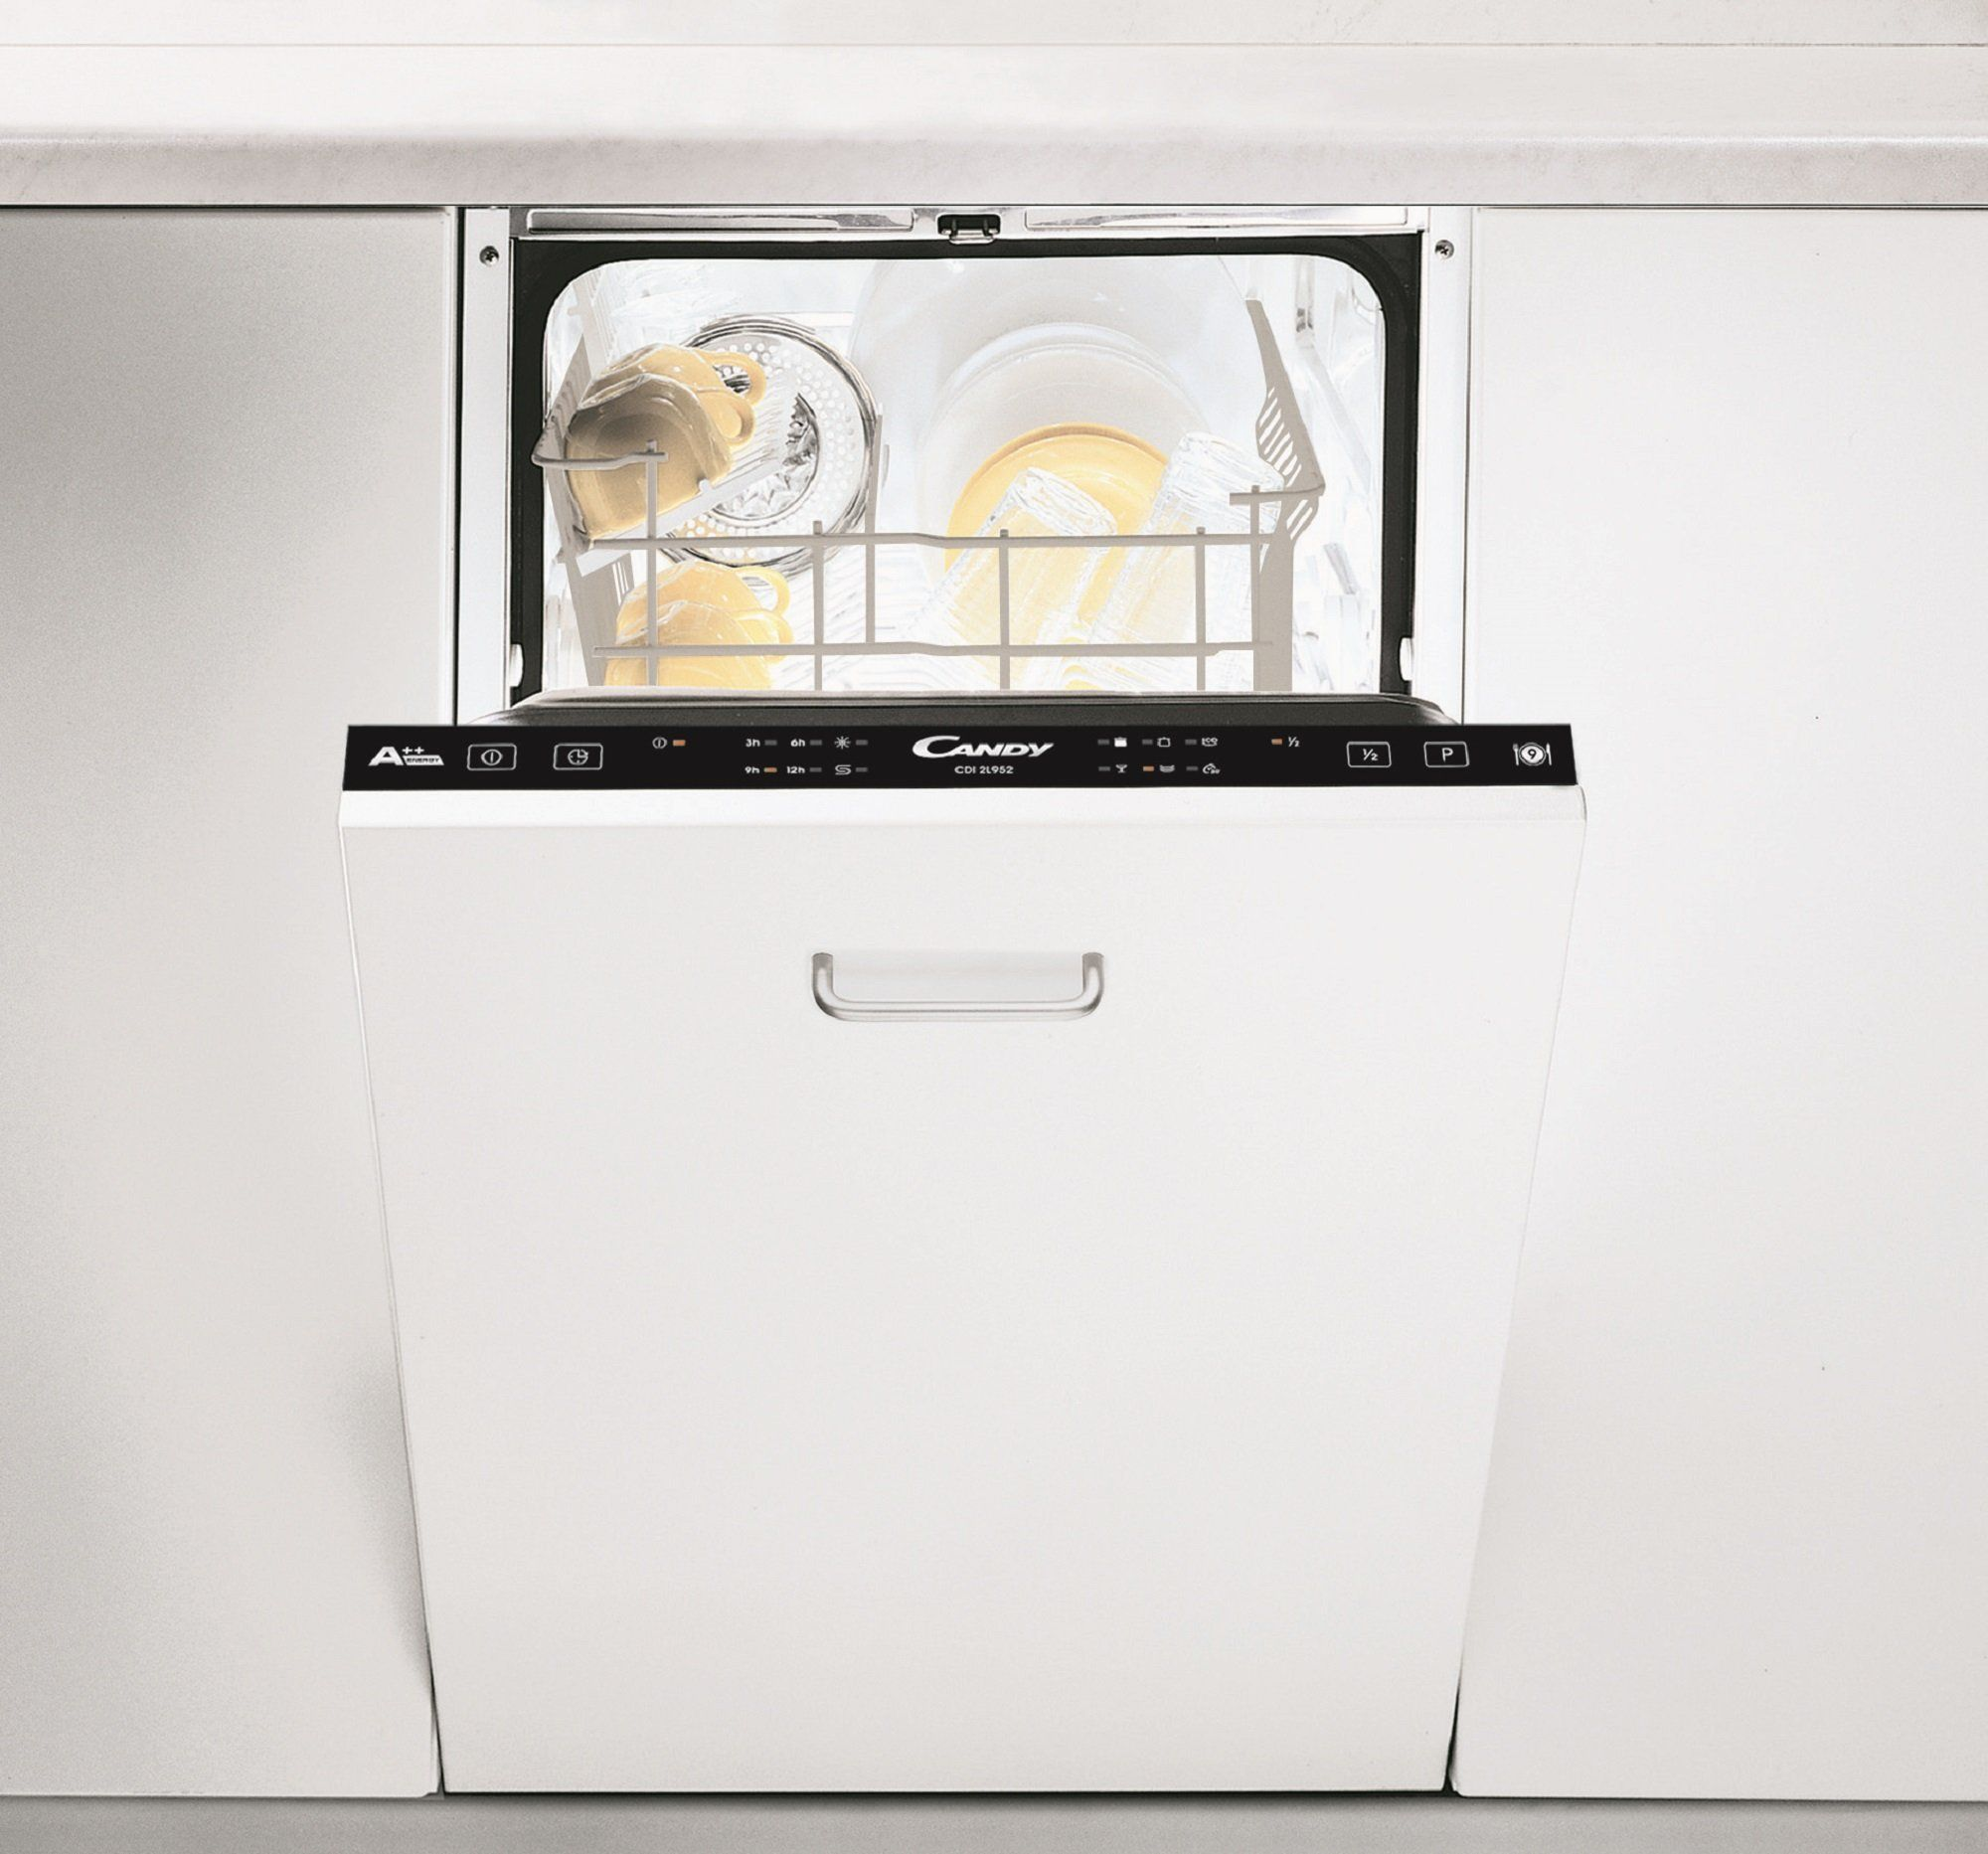 Candy CDIL952 Slimline Dishwasher White £249.99 Argos